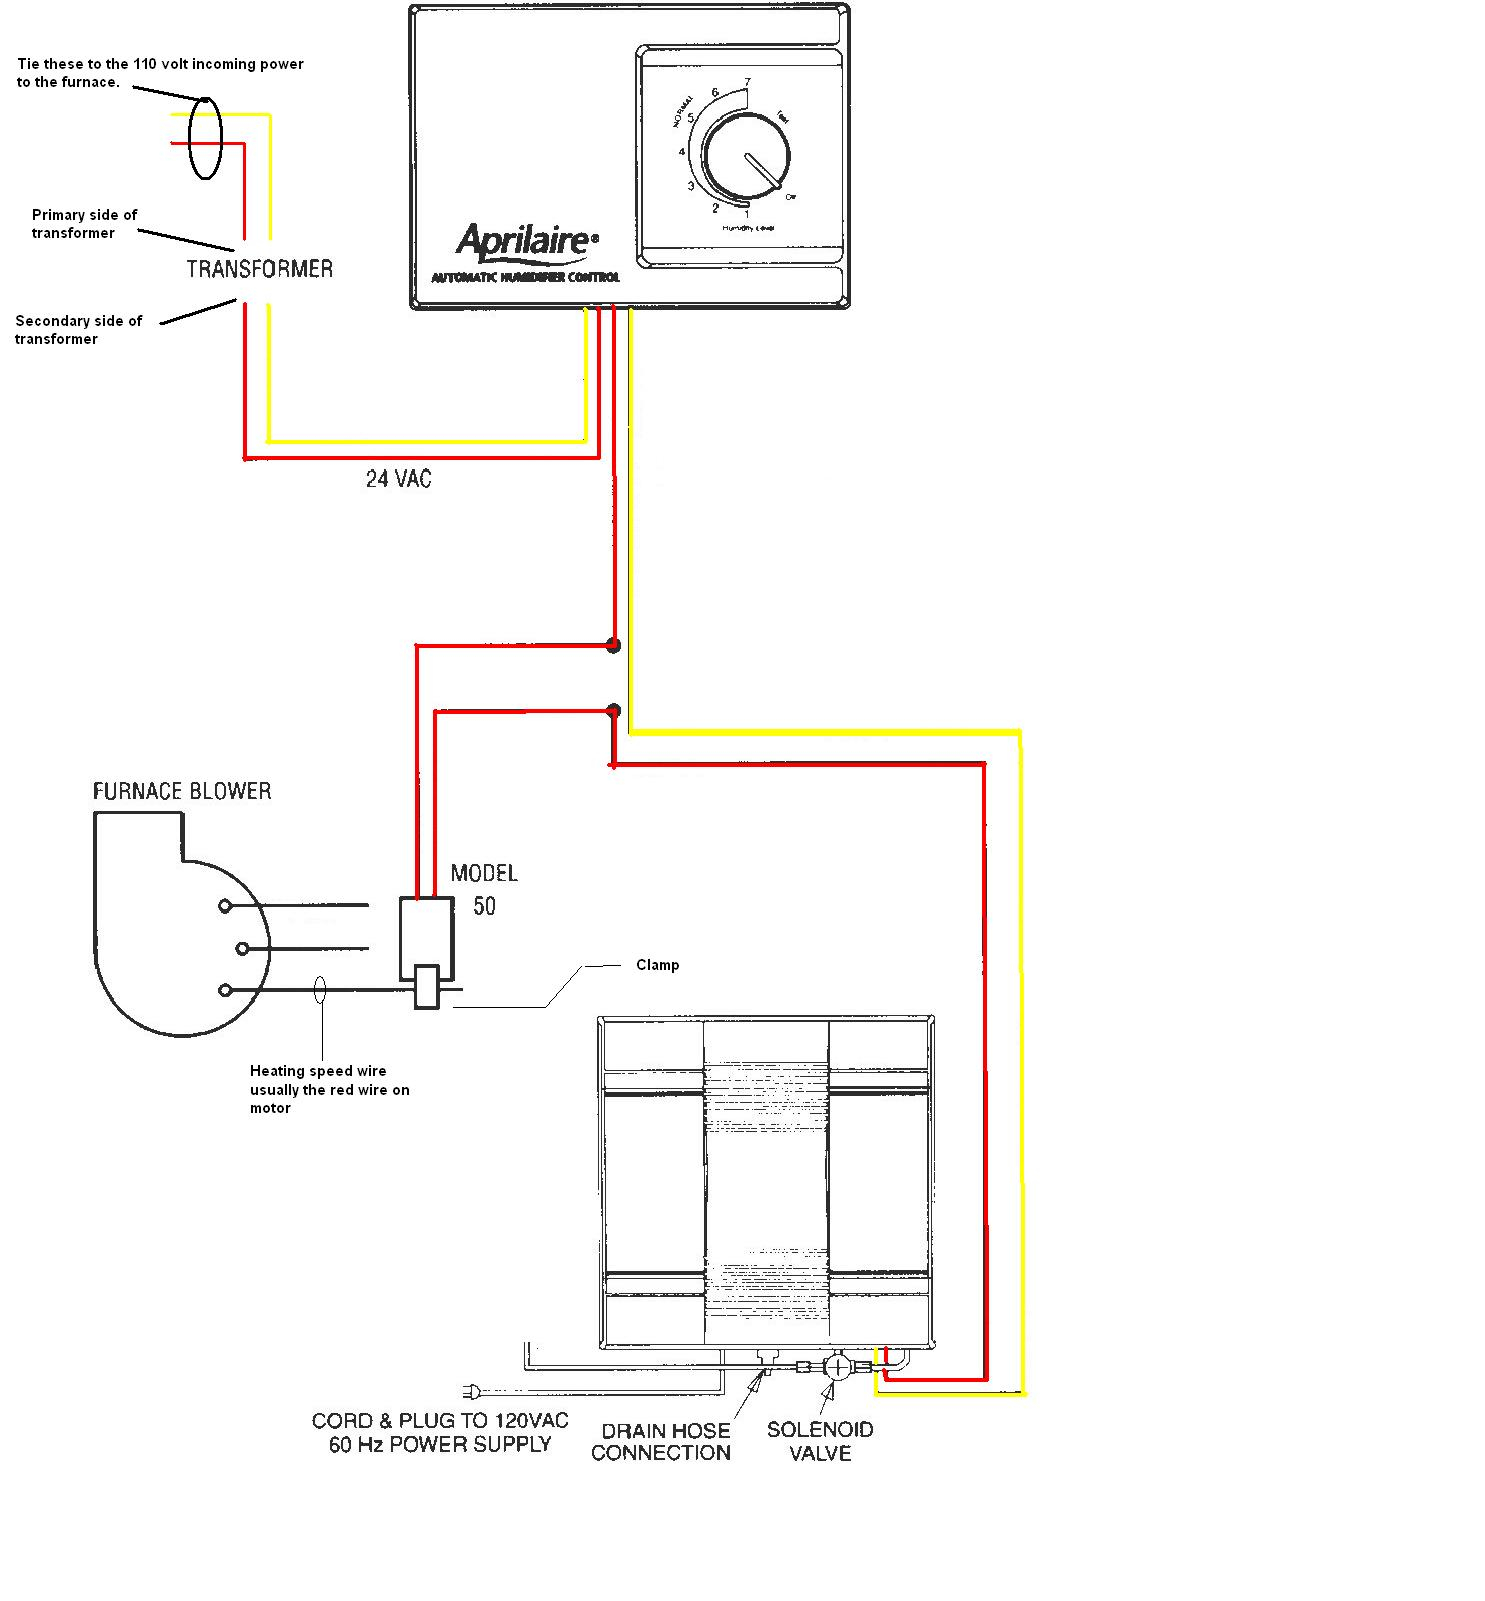 aprilaire wiring diagram Download-Aprilaire Humidifier Wiring Diagram Copy I Have An 700 M 10 10-f